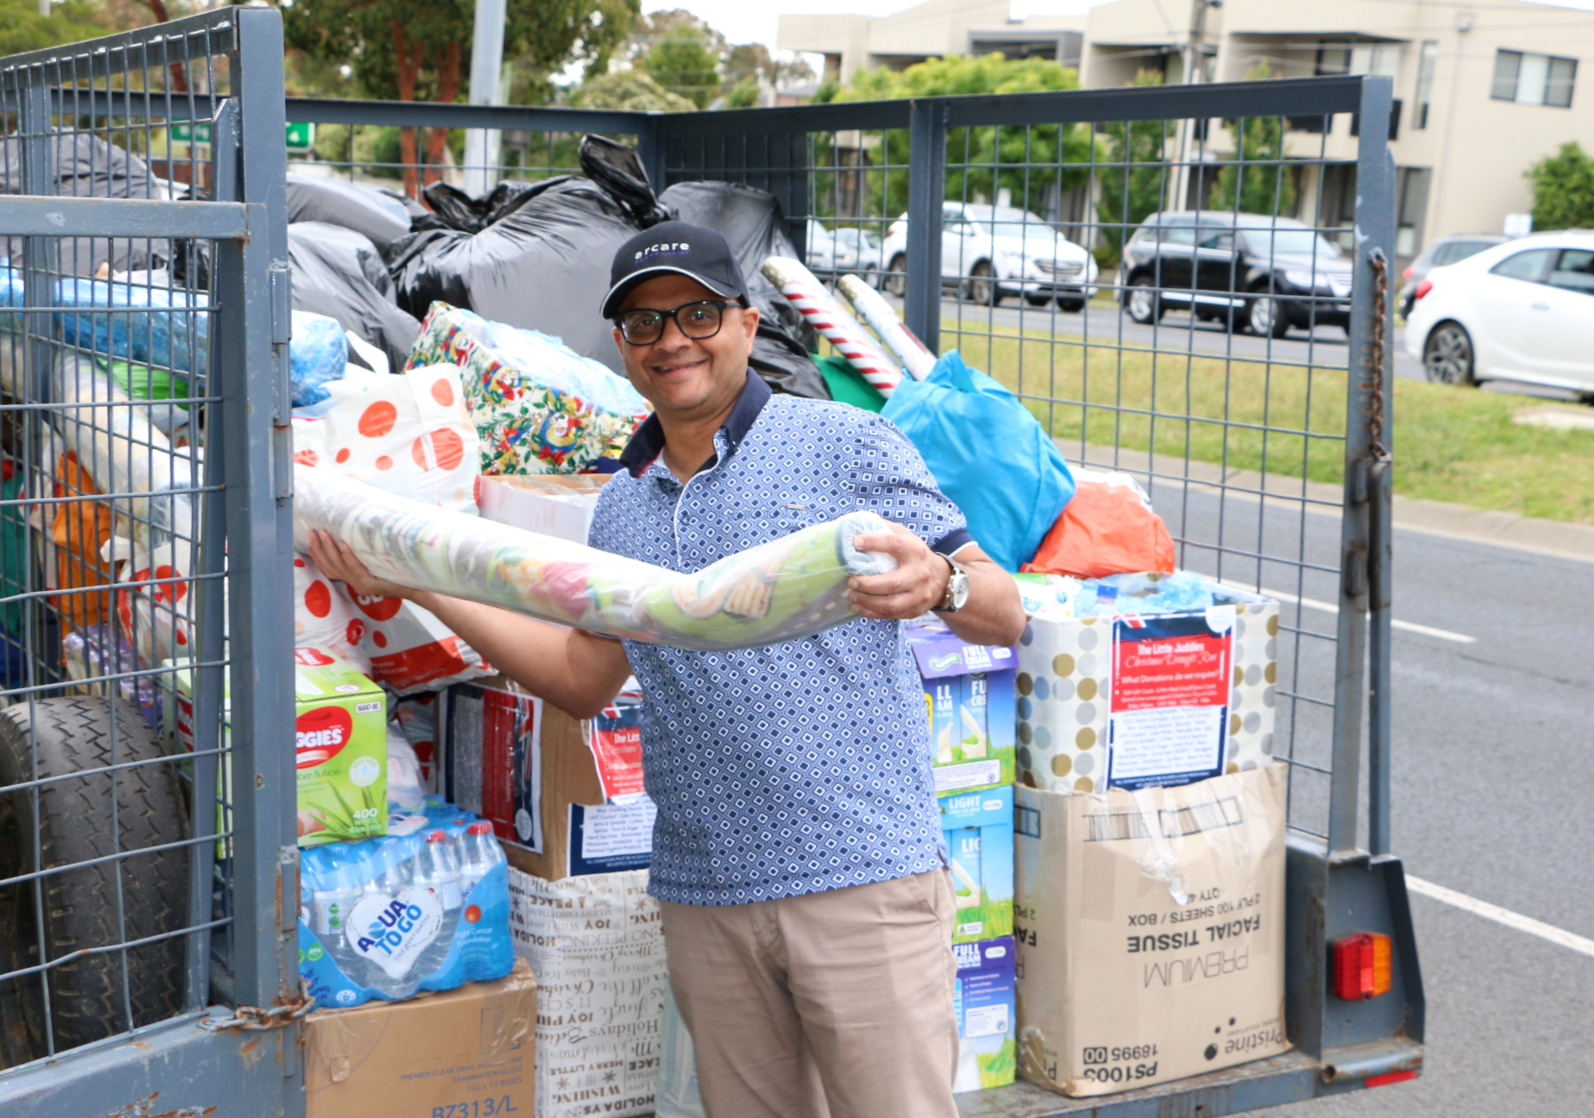 Arcare Aged Care Drought Relief Collection 2019 4